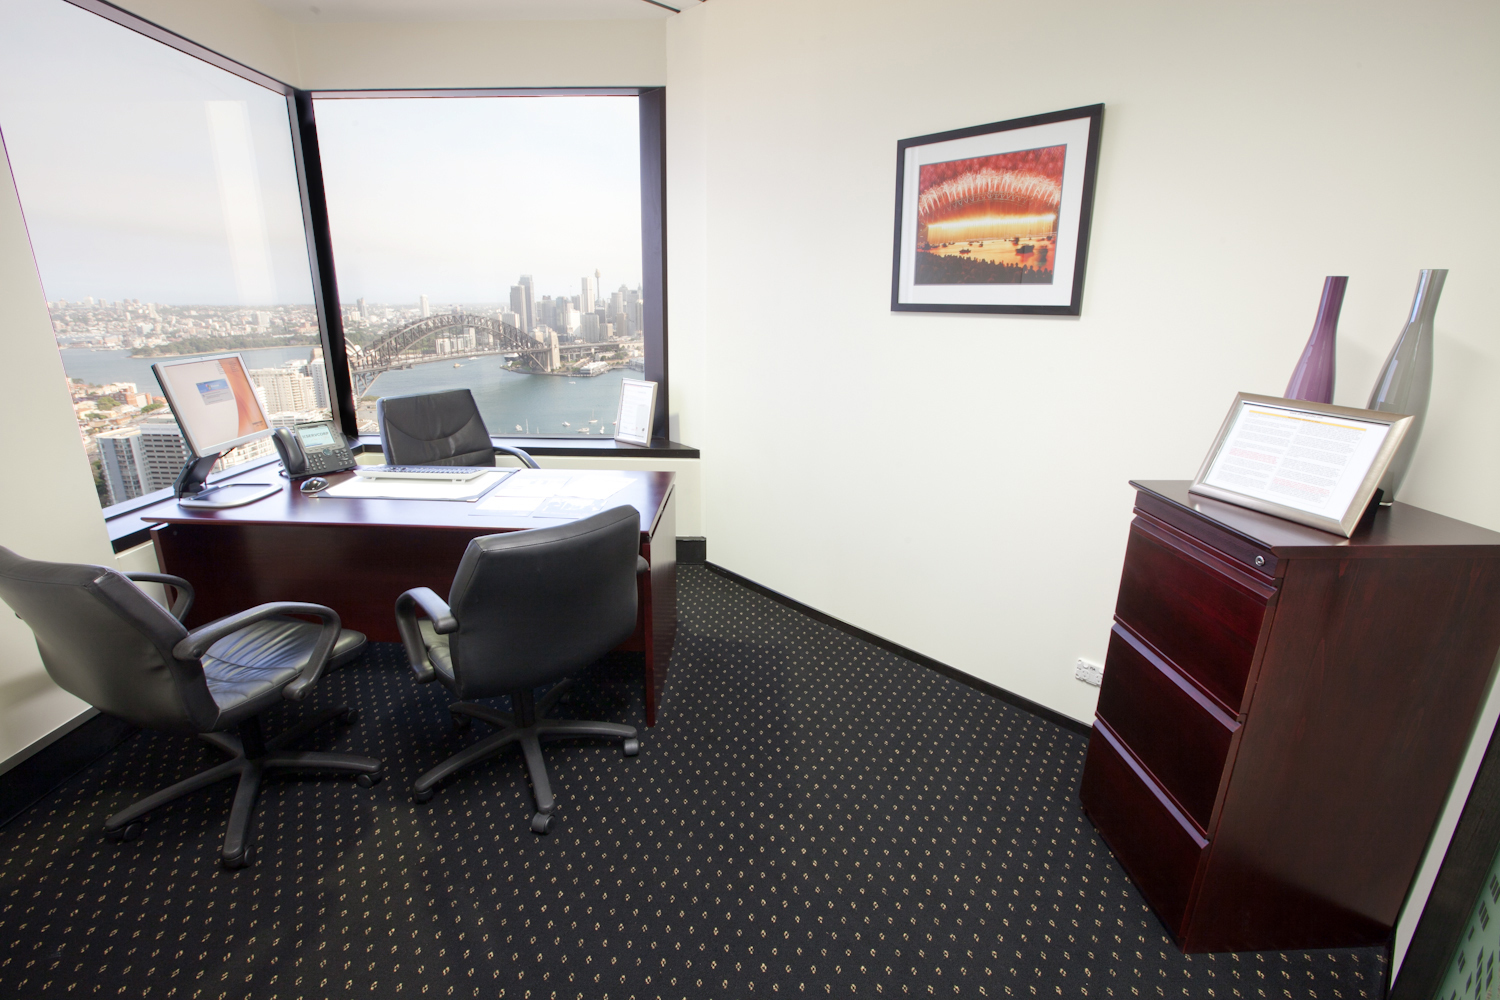 OFFICES LOCATED IN NORTH SYDNEY WITH MARVELOUS VIEWS